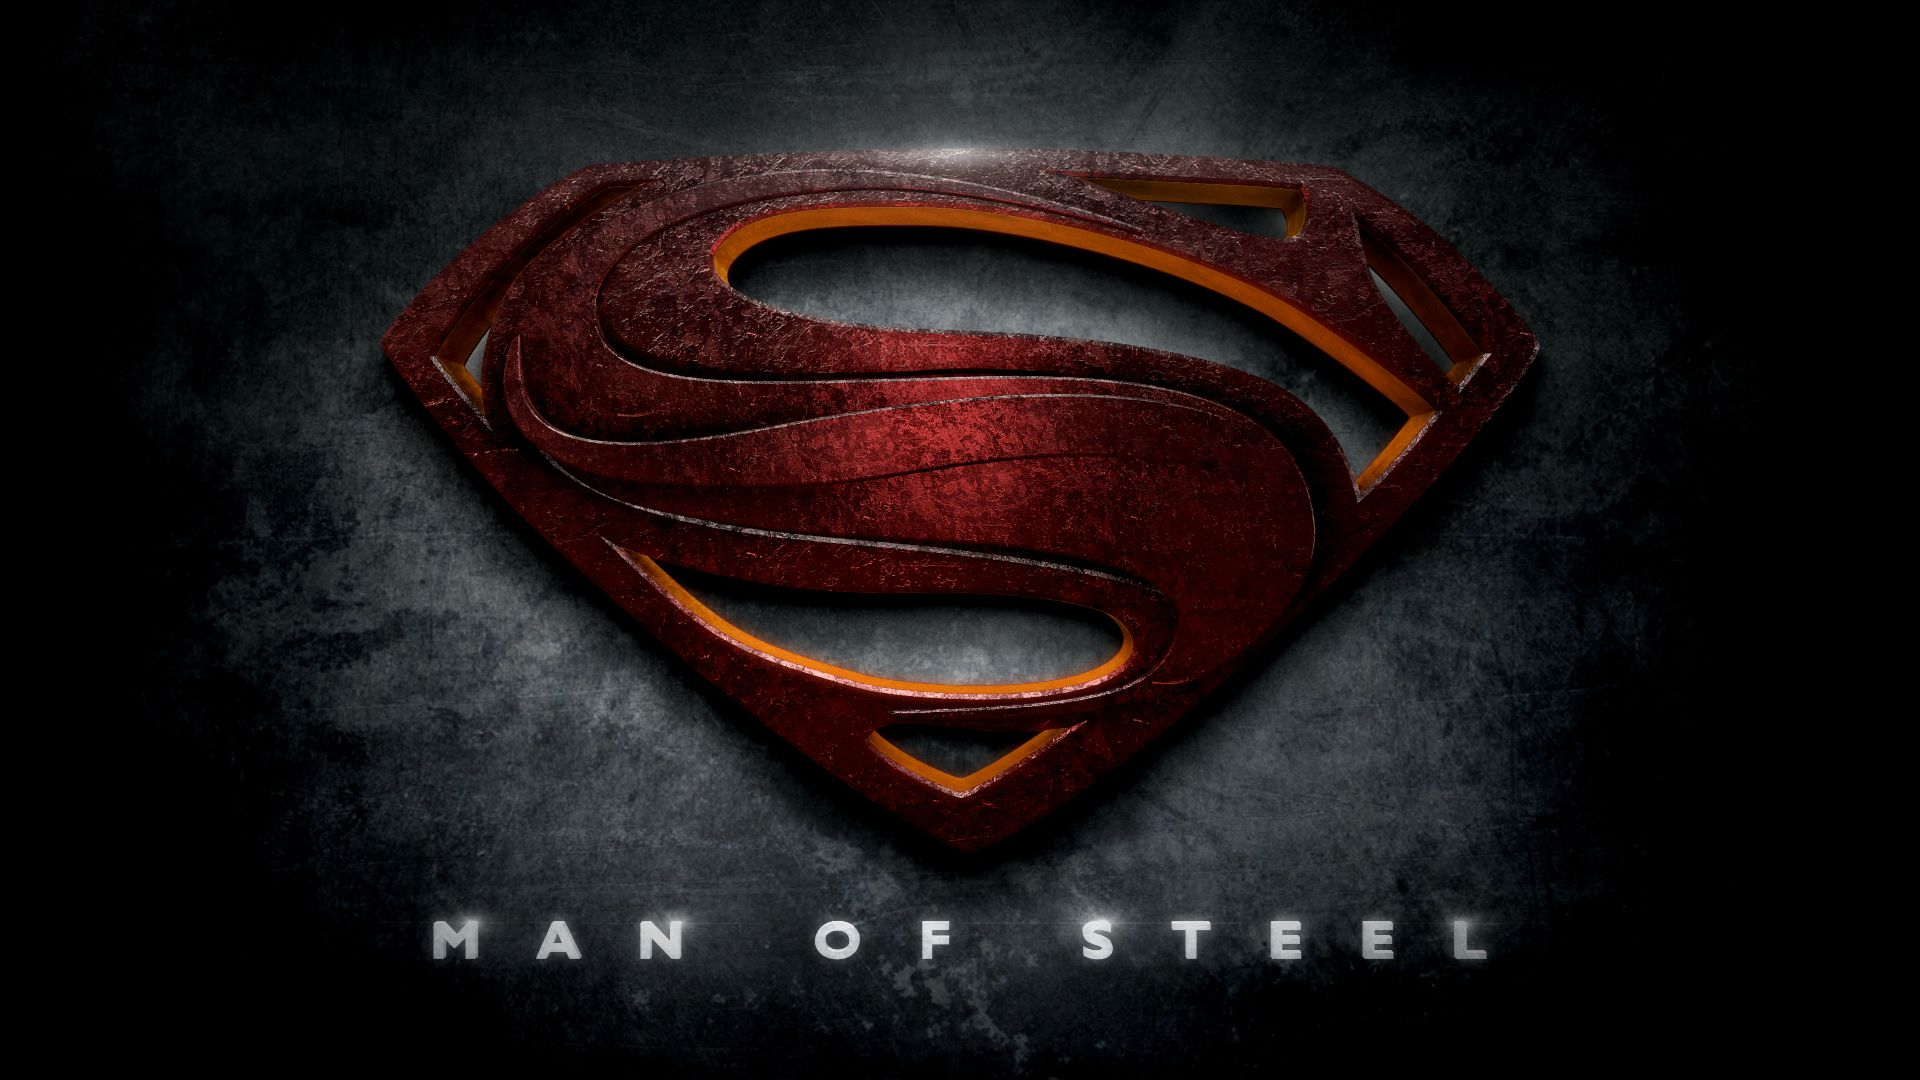 Justice League Movie Logos In the Style of Man of Steel